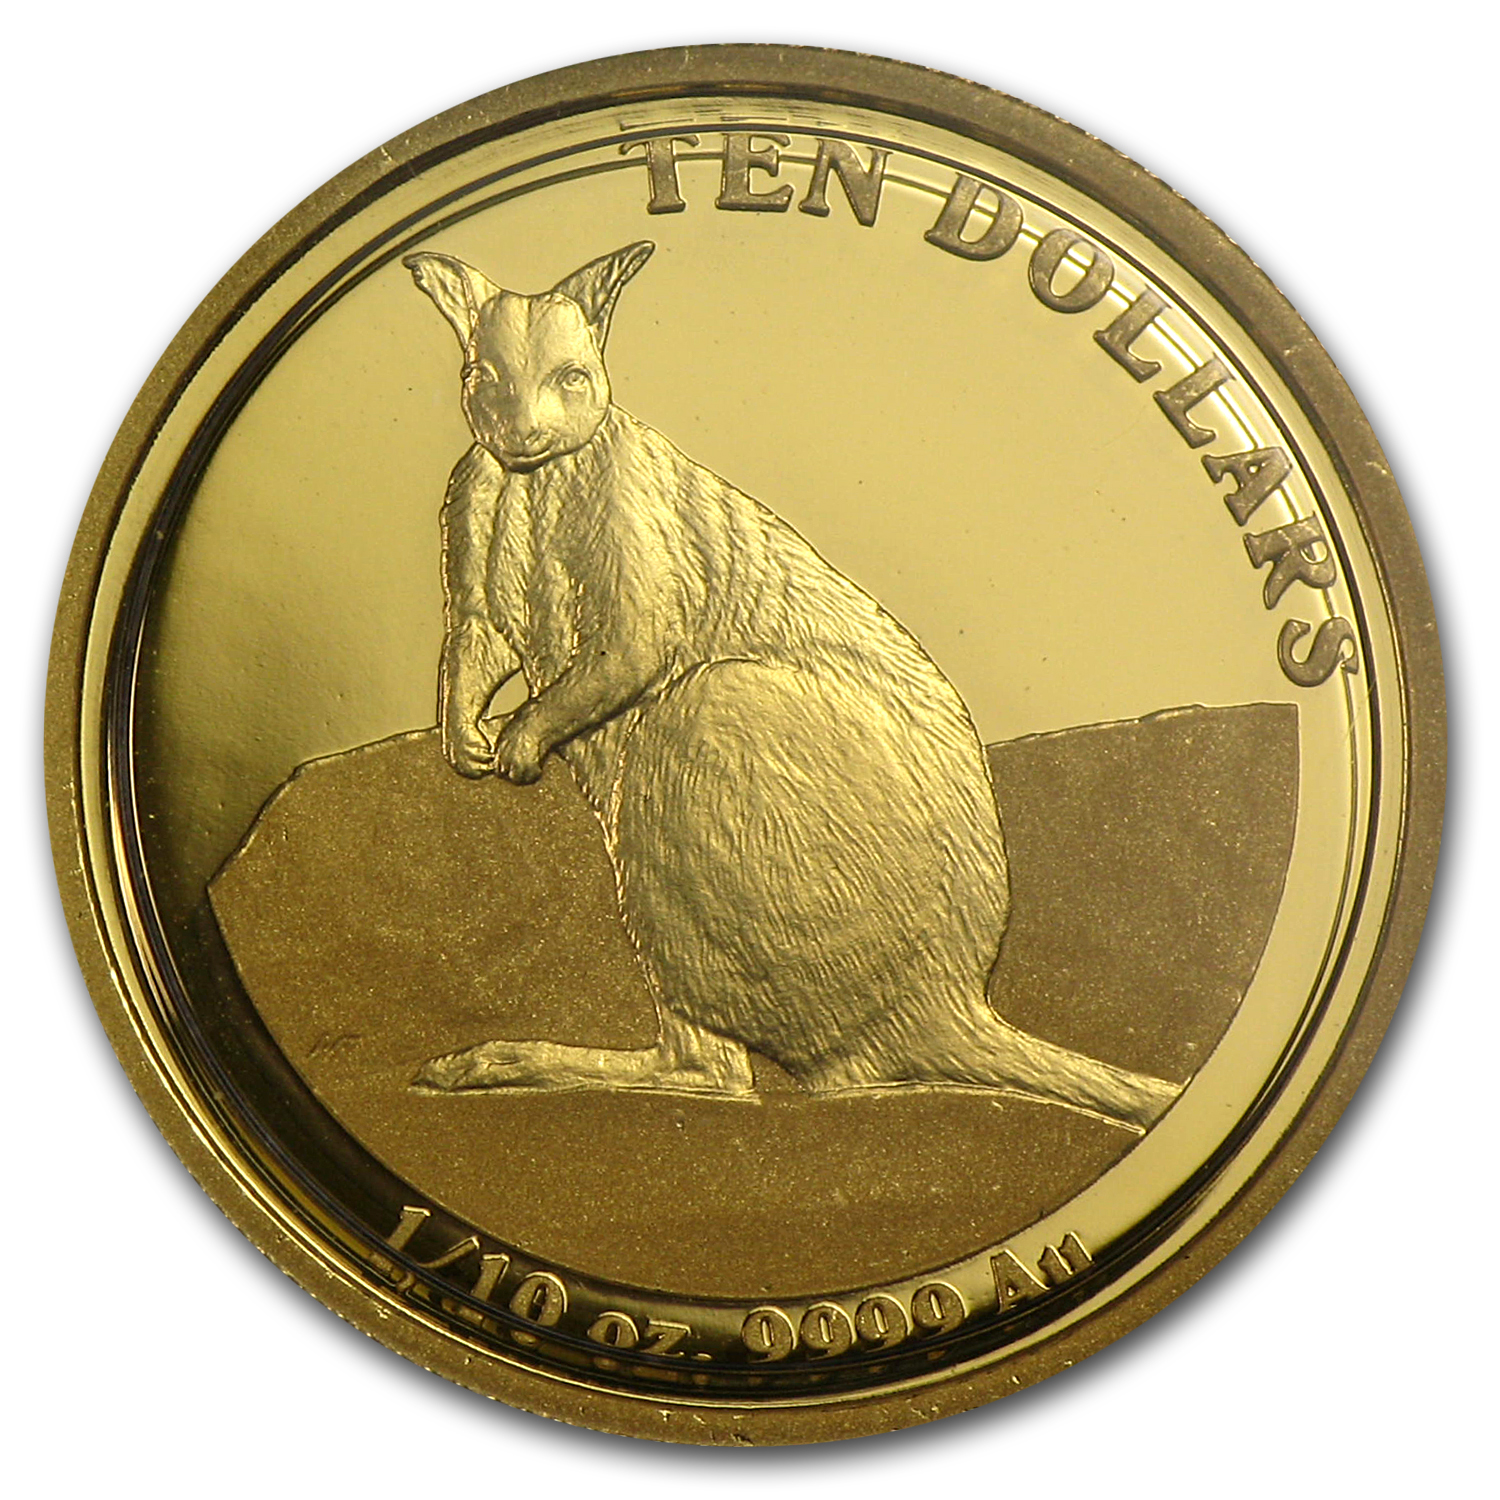 Royal Australian Mint 2012 1/10 oz Gold Proof - Kangaroo